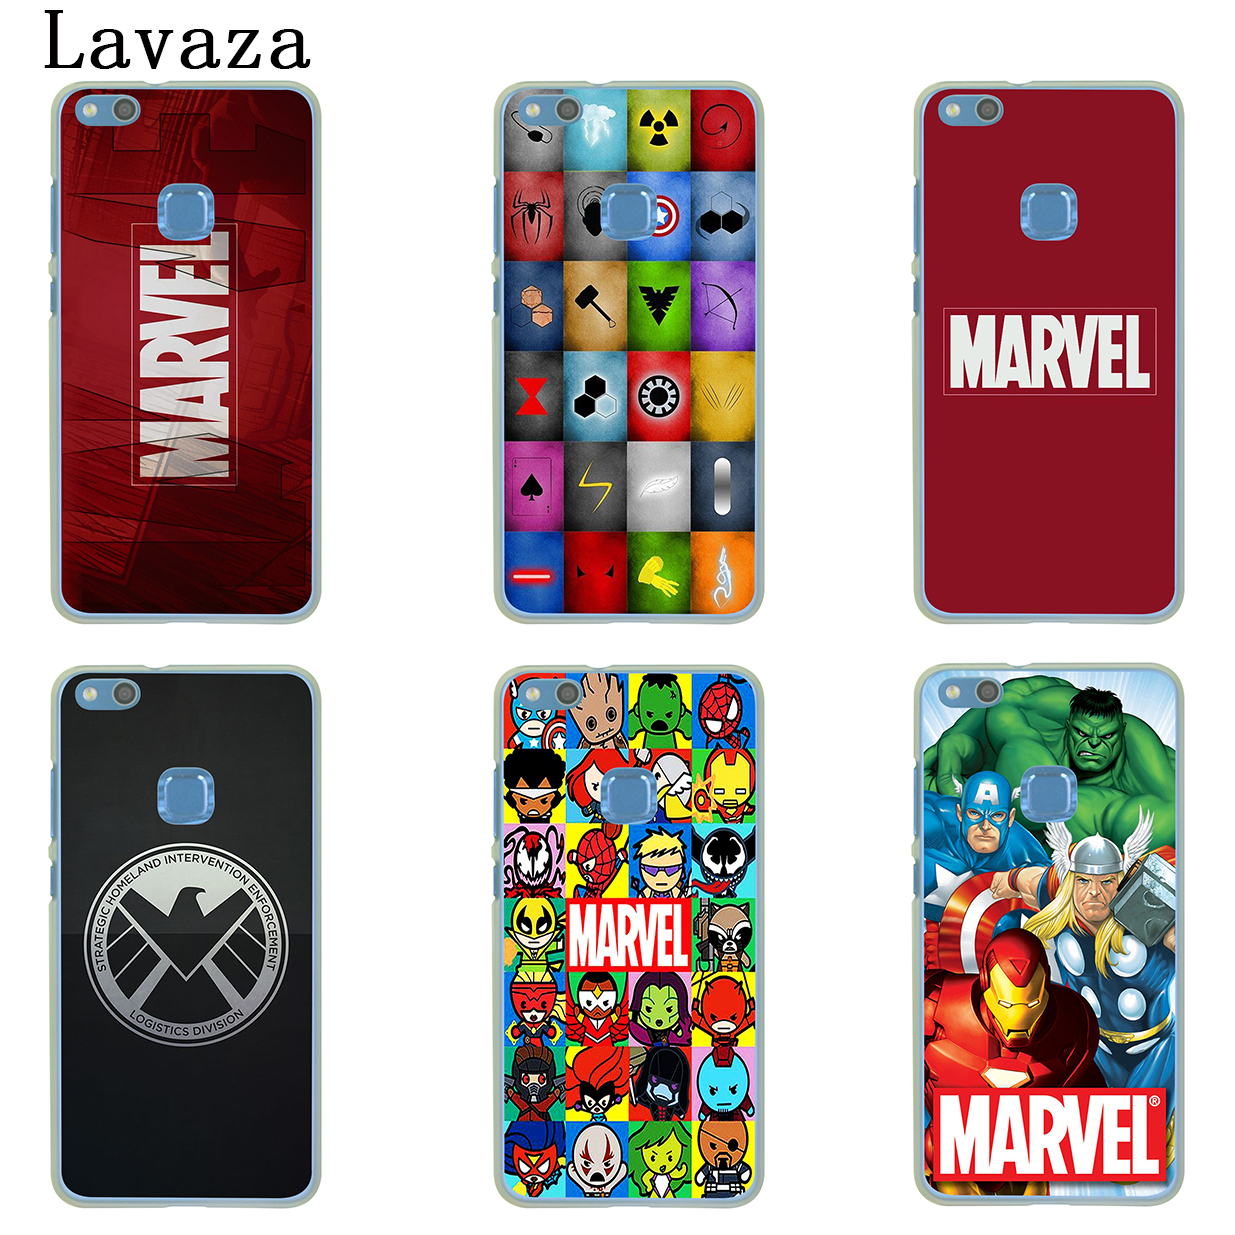 Phone Bags & Cases Cellphones & Telecommunications Reasonable Lavaza Sun And Moon Black Silicone Case For Huawei Mate 10 Pro 20 Lite Nova 2i 3 3i 4 Y5 2017 Y6 2018 Y7 Prime Y9